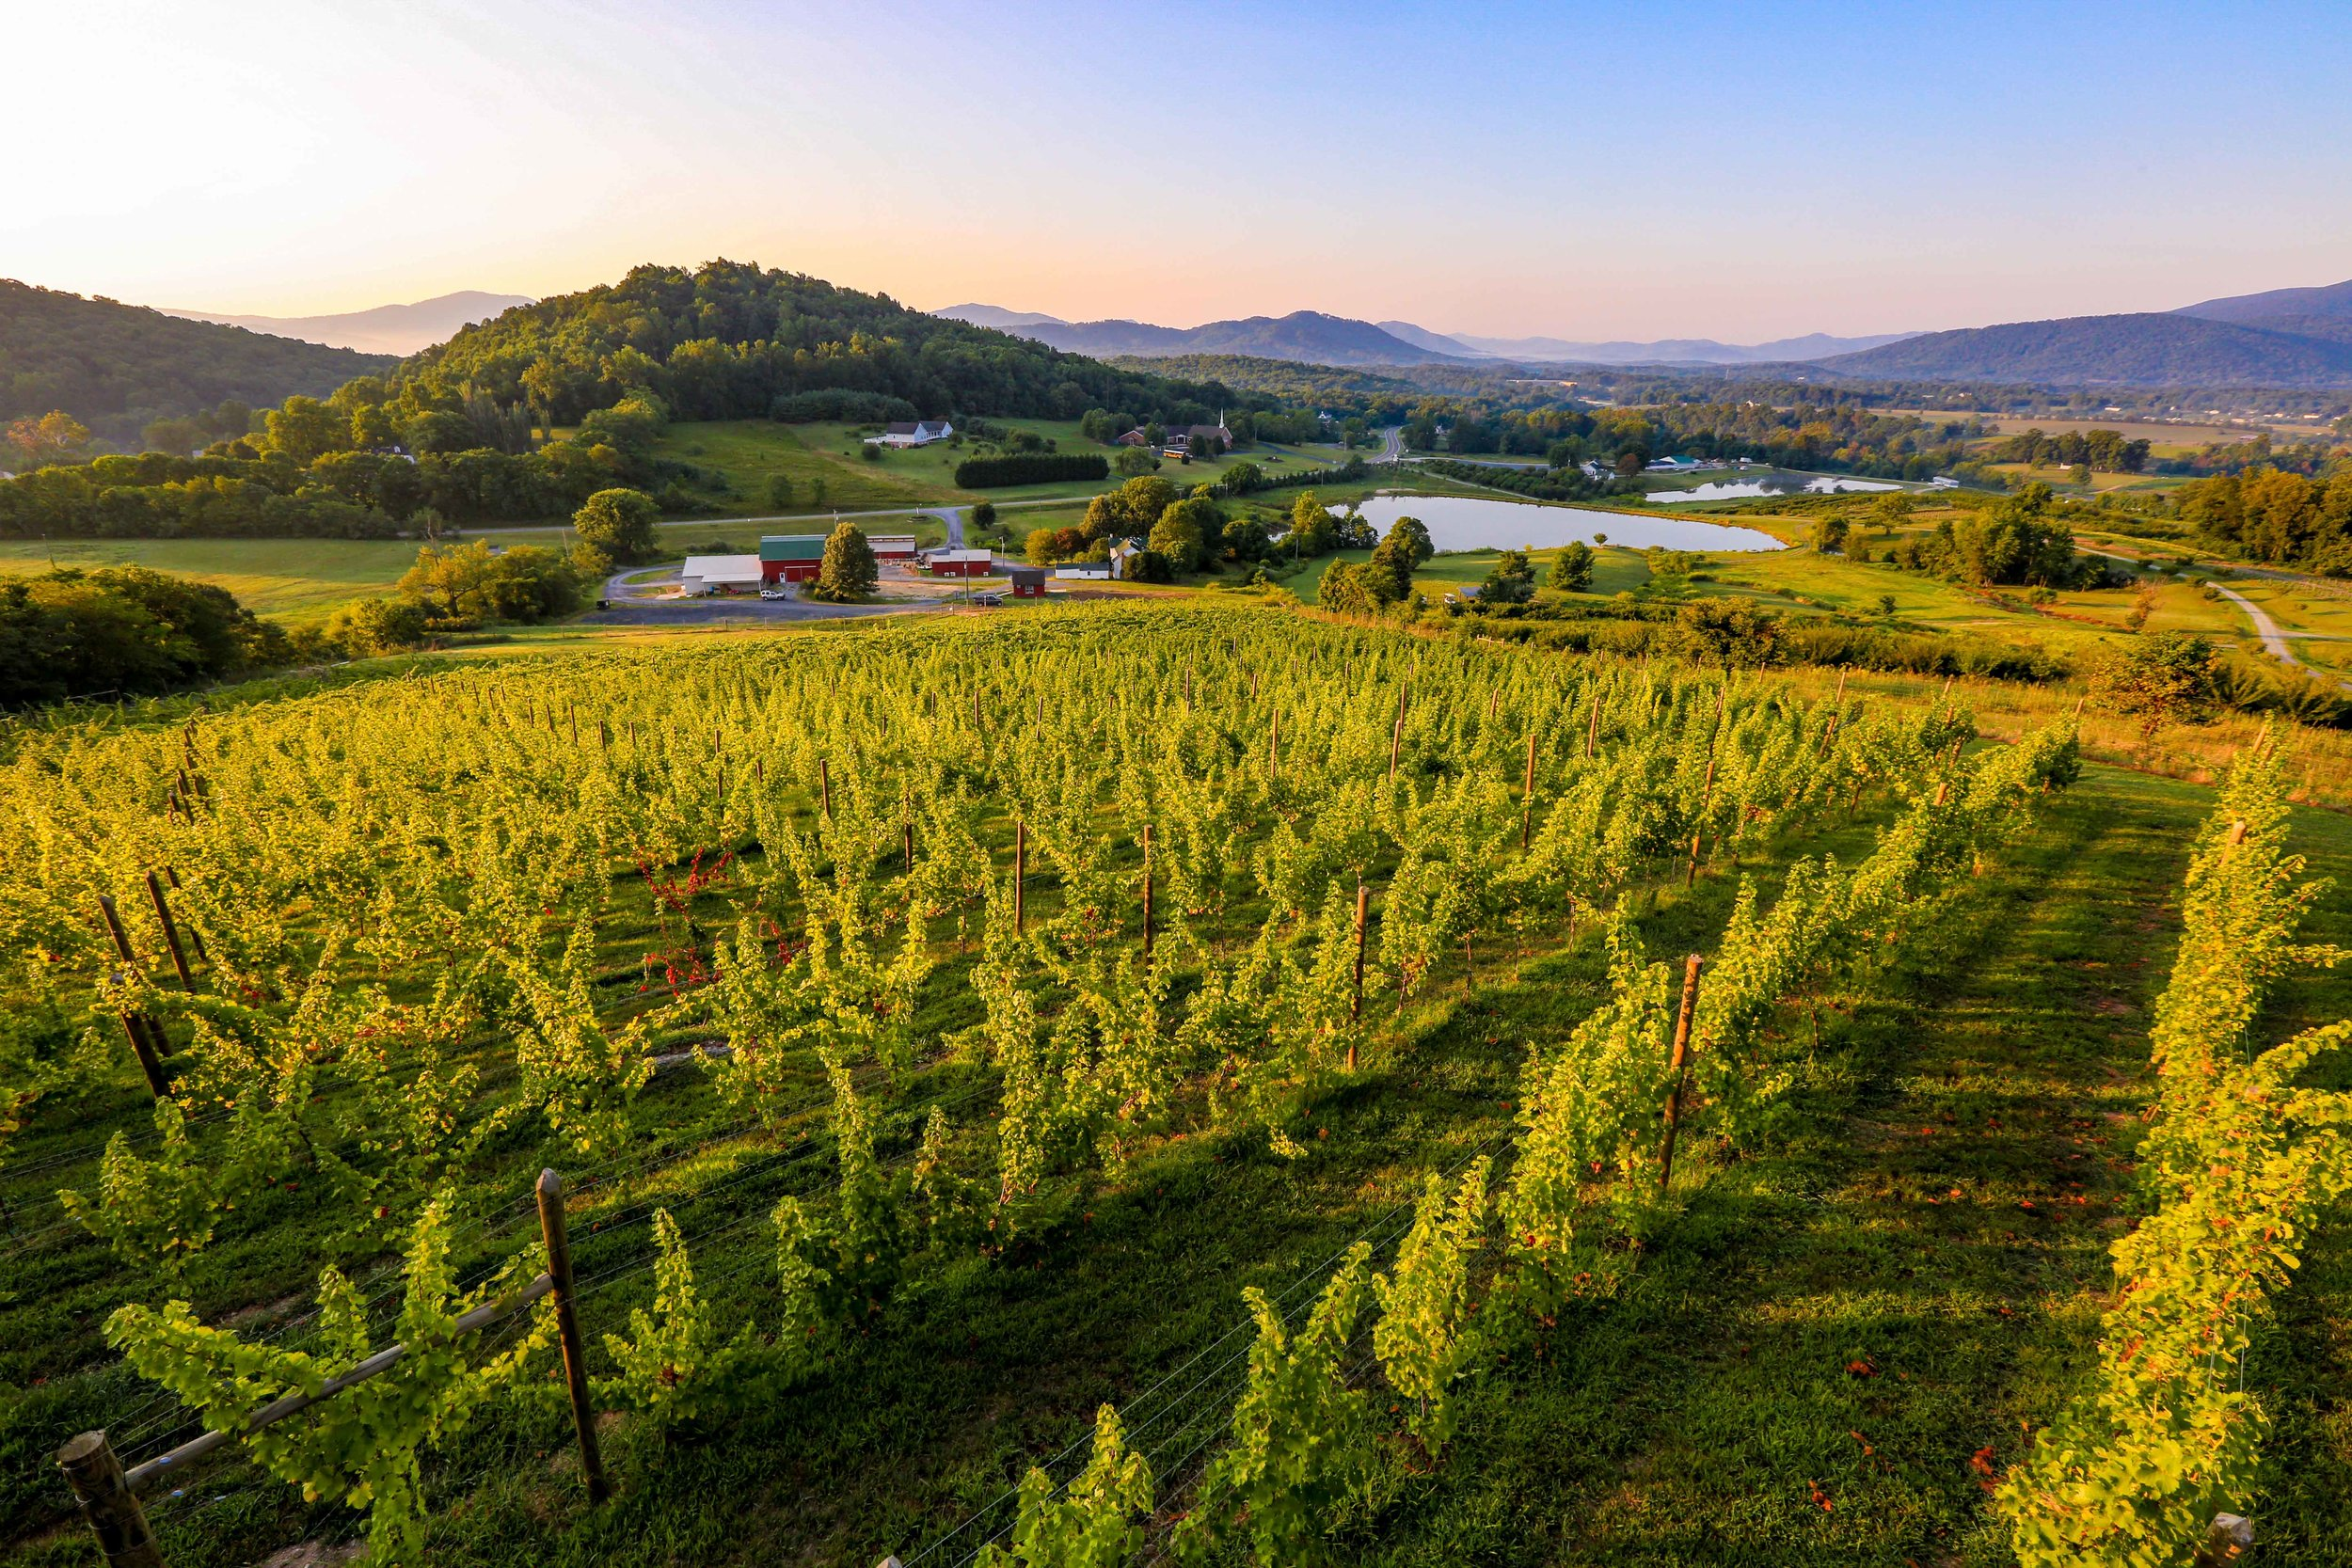 170820-vrv-stock-vineyard-0074-300dpi.jpg